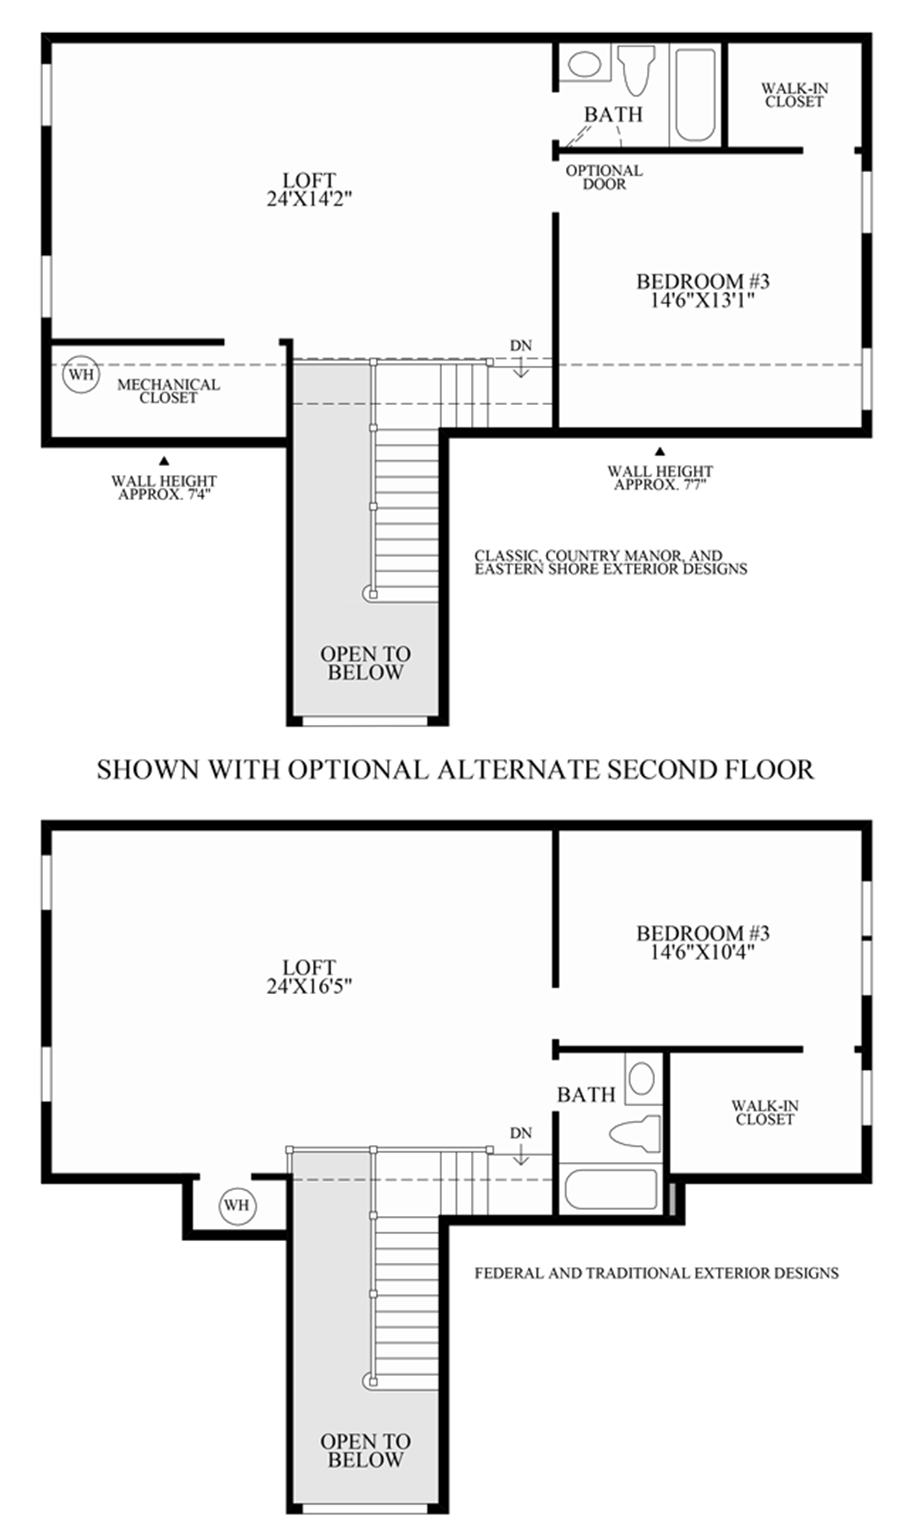 Optional 2nd Floors Floor Plan